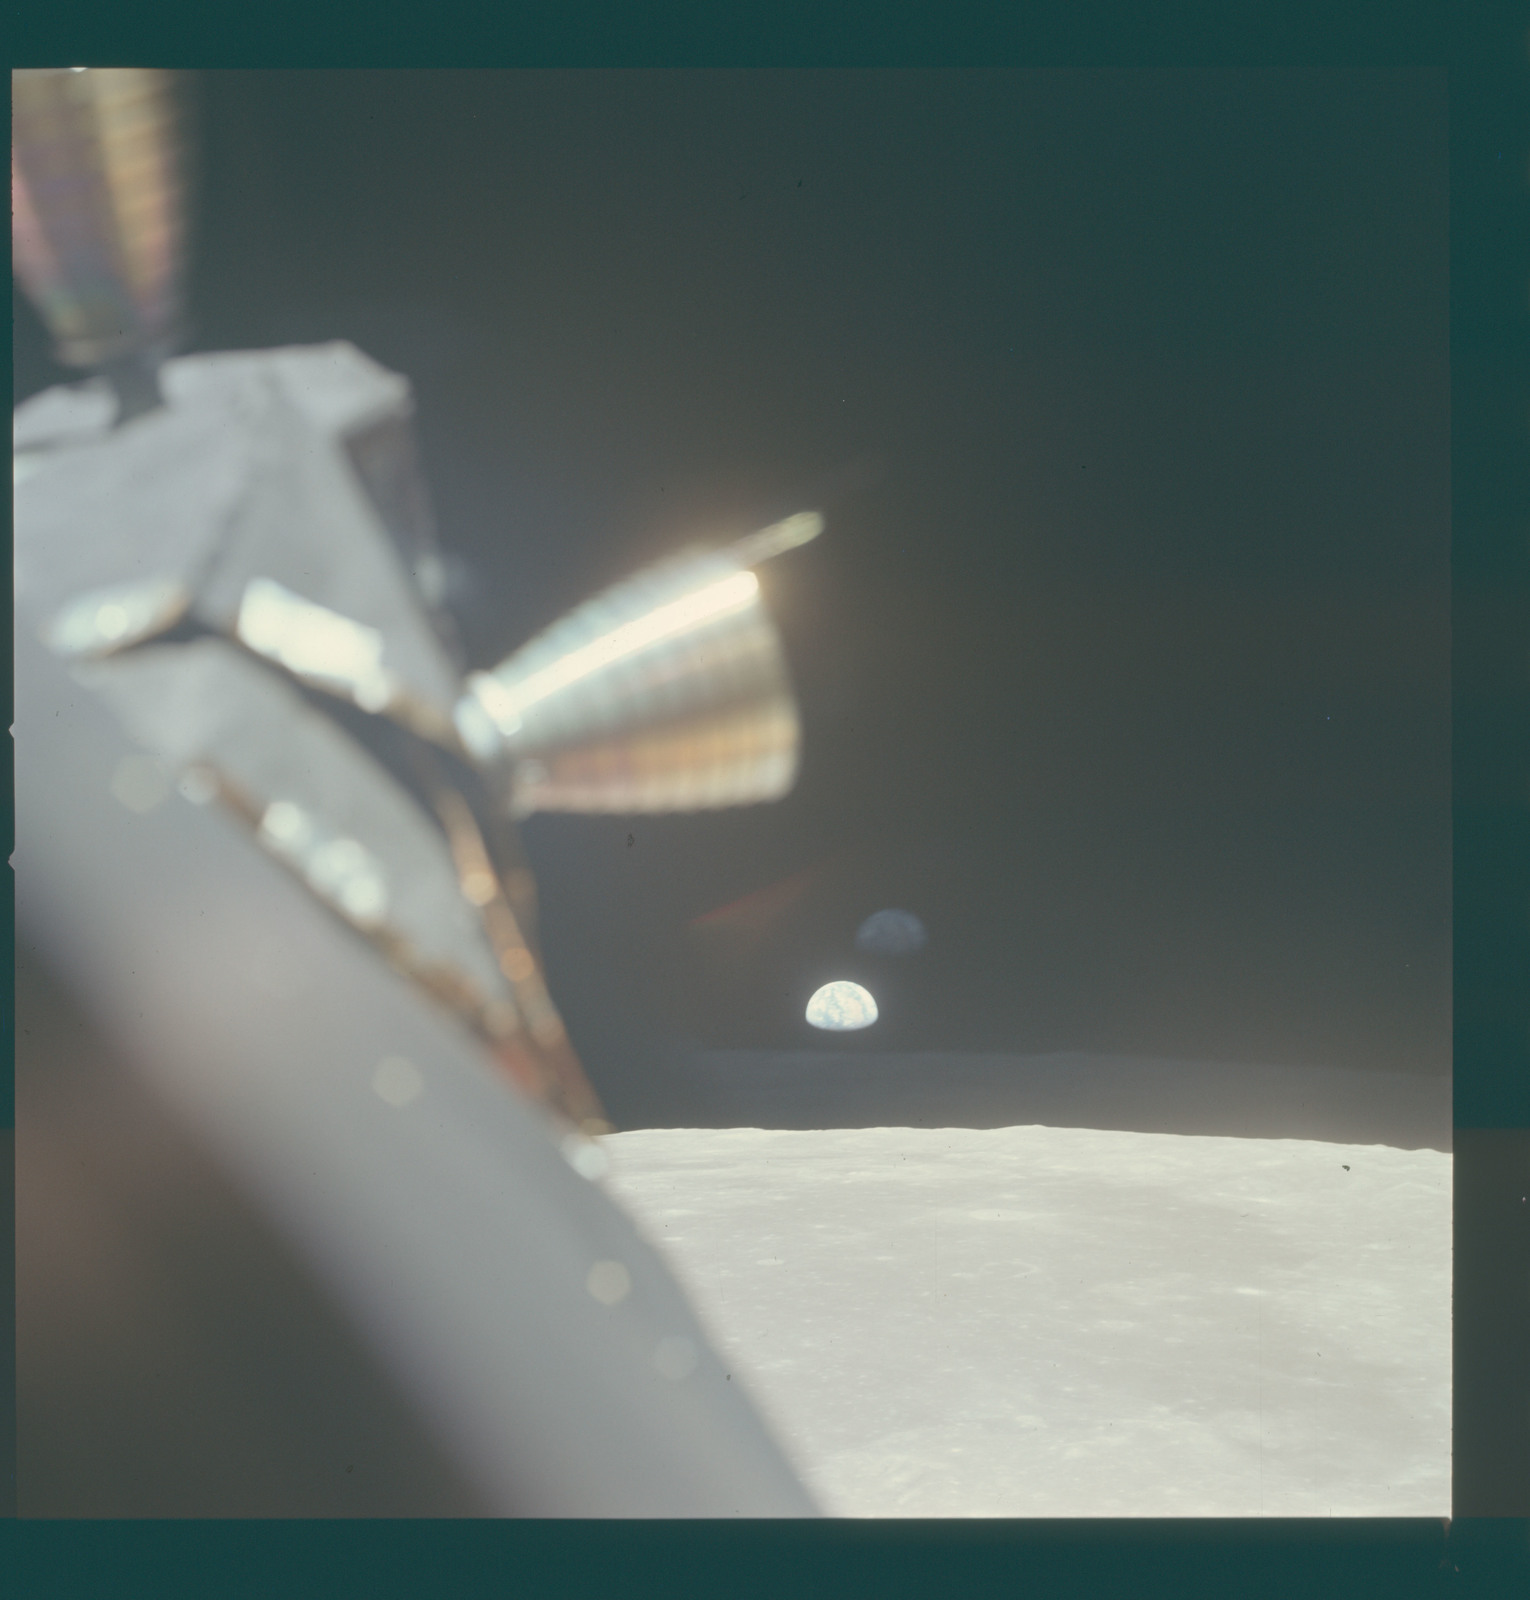 AS11-37-5441 - Apollo 11 - Apollo 11 Mission image - View of Moon, with Earth visible over the horizon